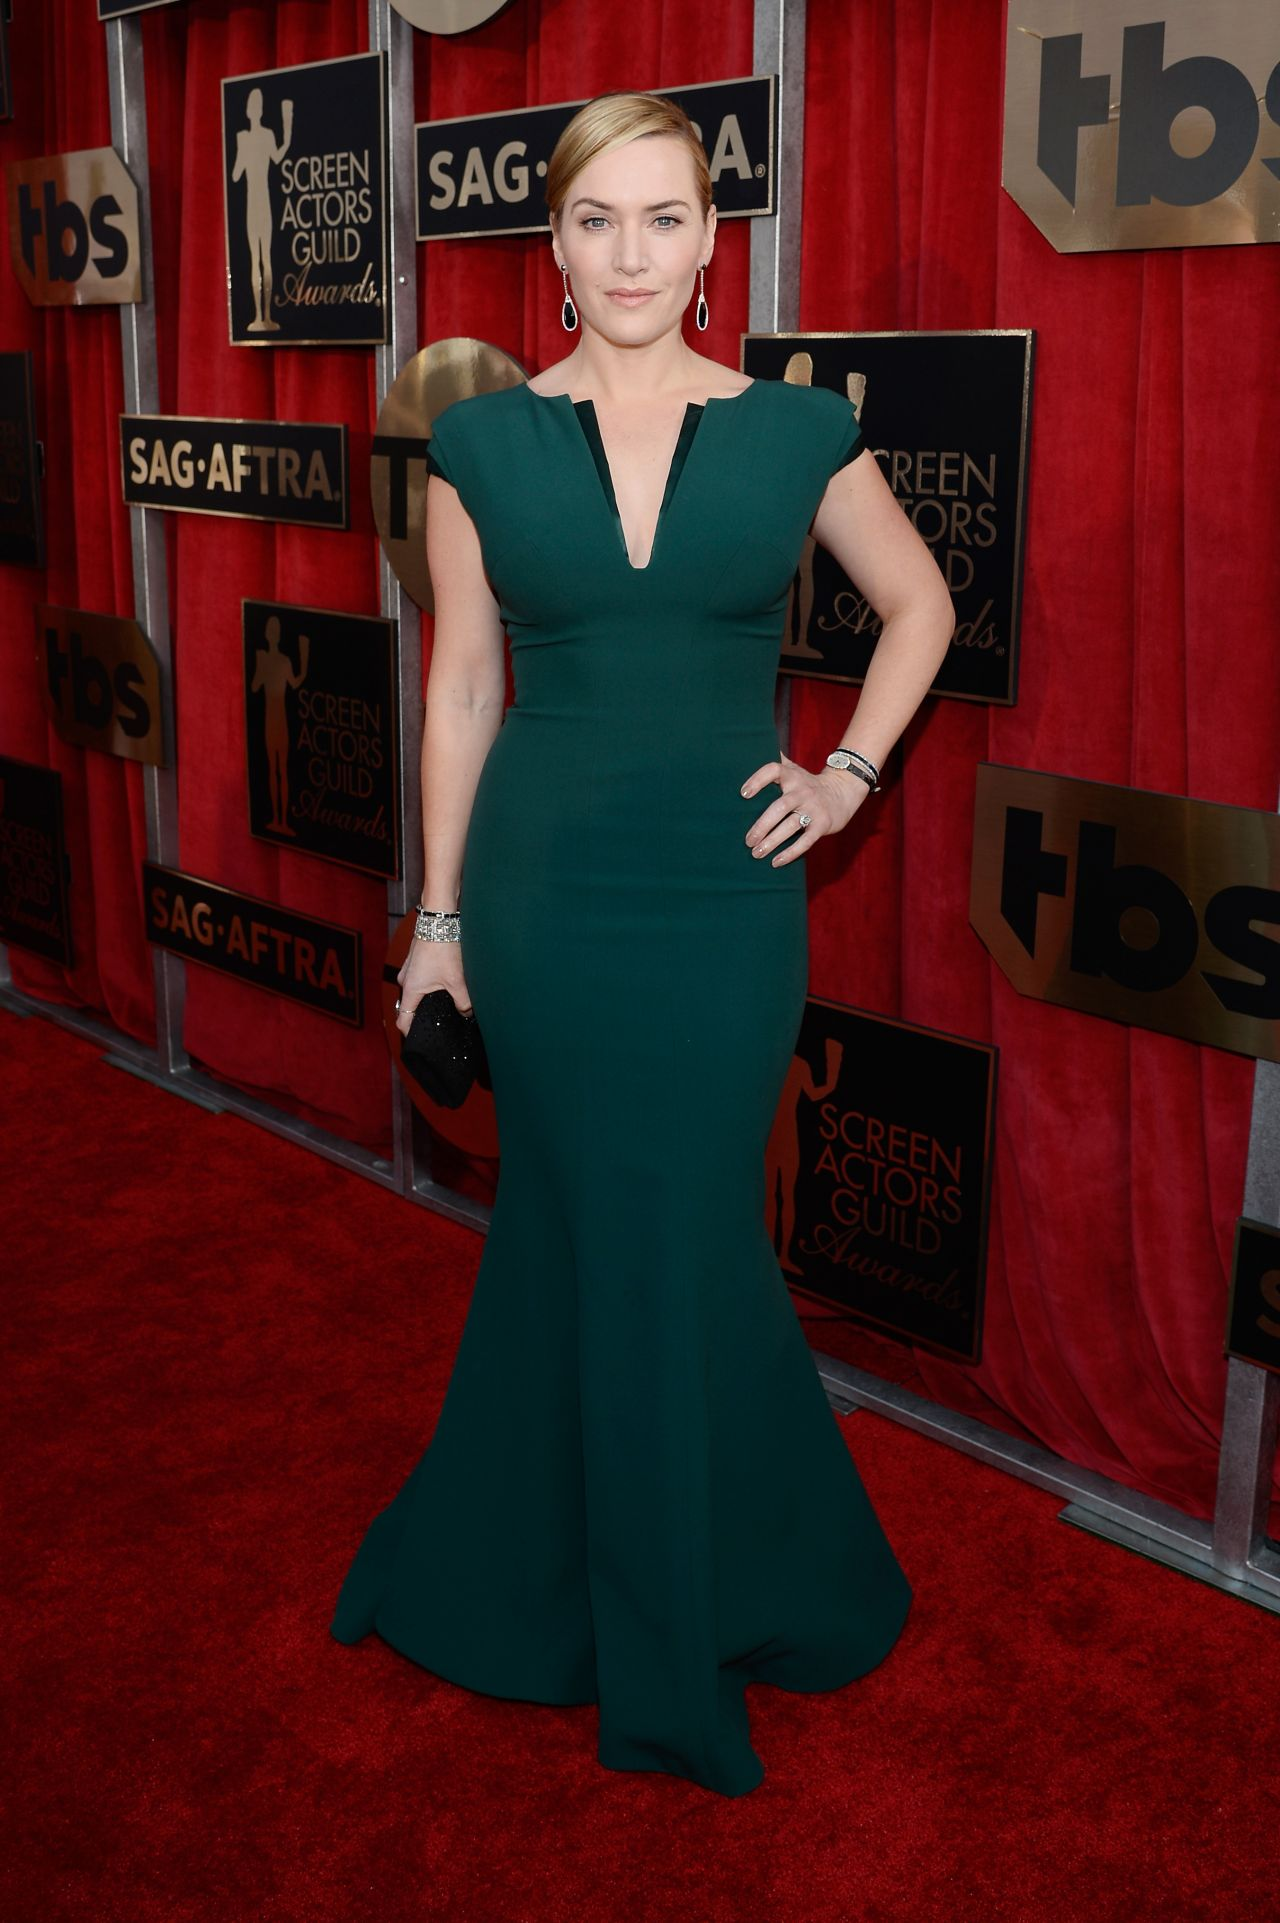 kate-winslet-sag-awards-2016-at-shrine-auditorium-in-los-angeles-2